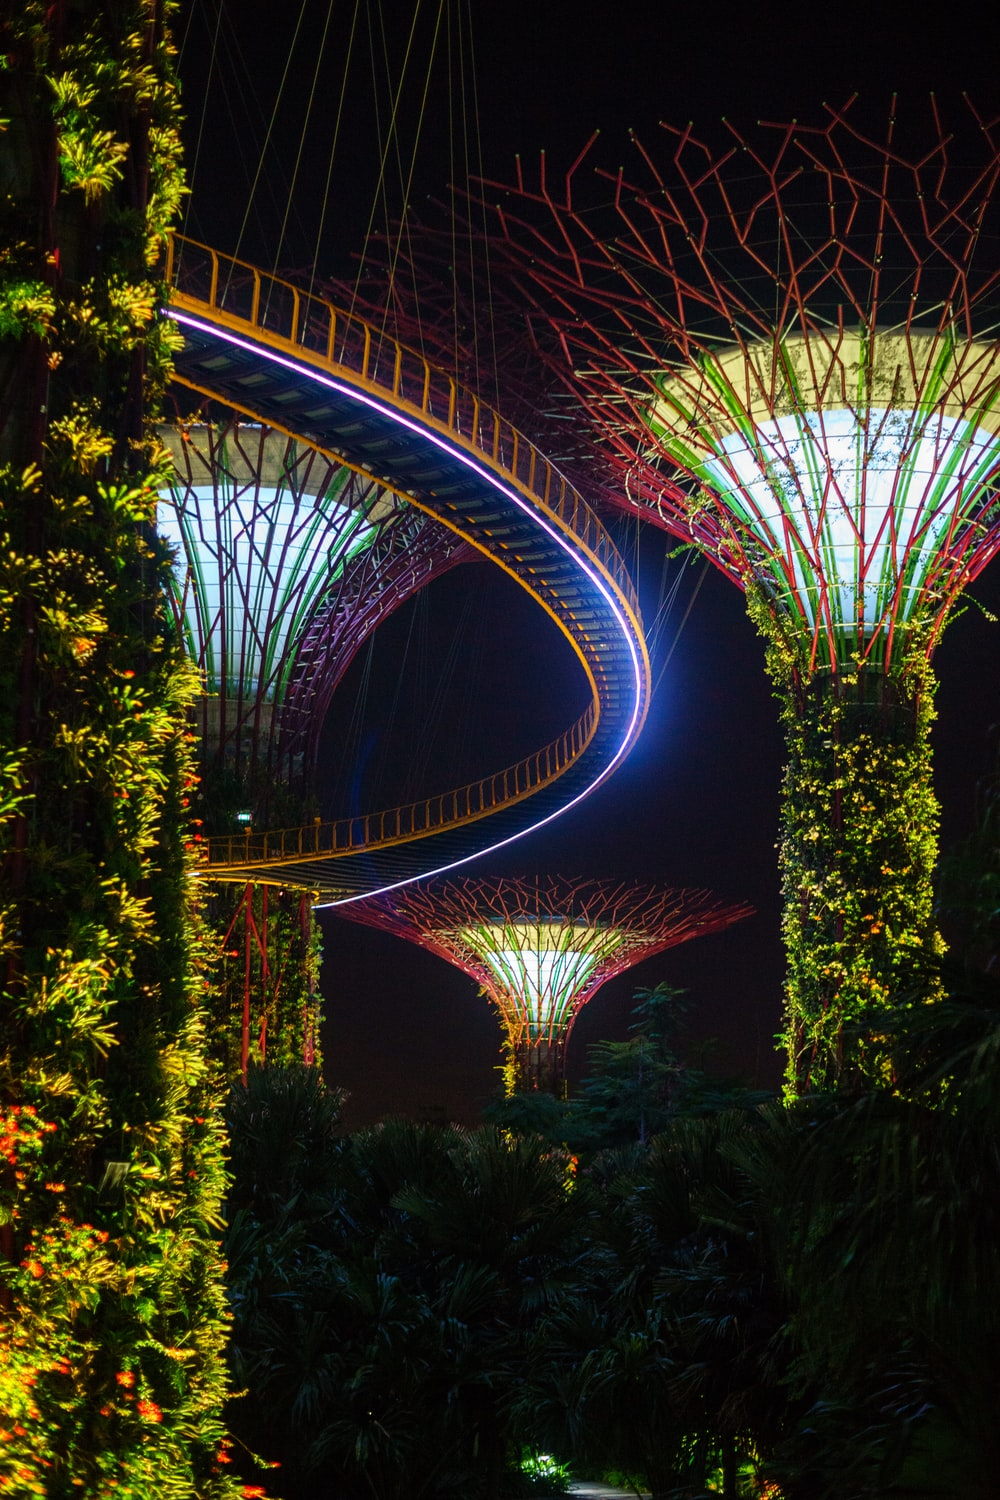 Garden by the Bay at night time